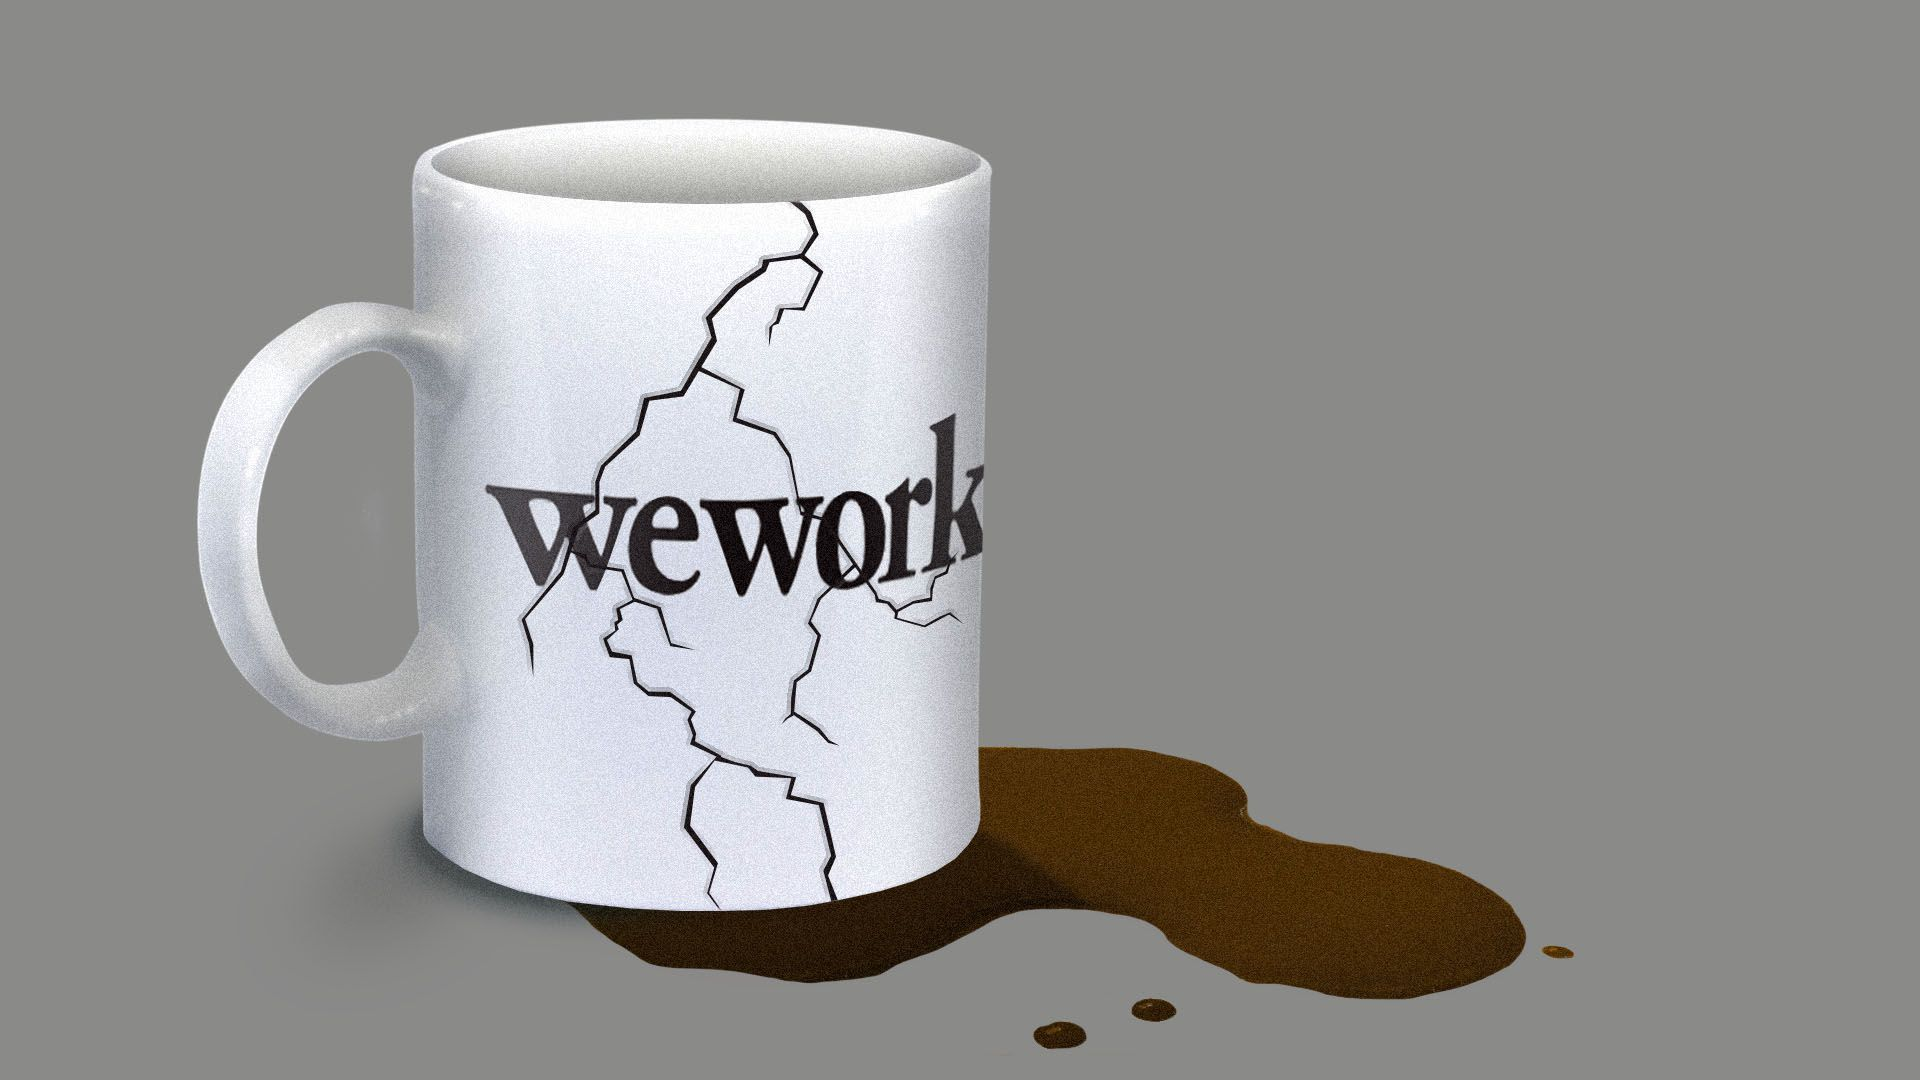 illustration of a wework coffee mug that is cracked